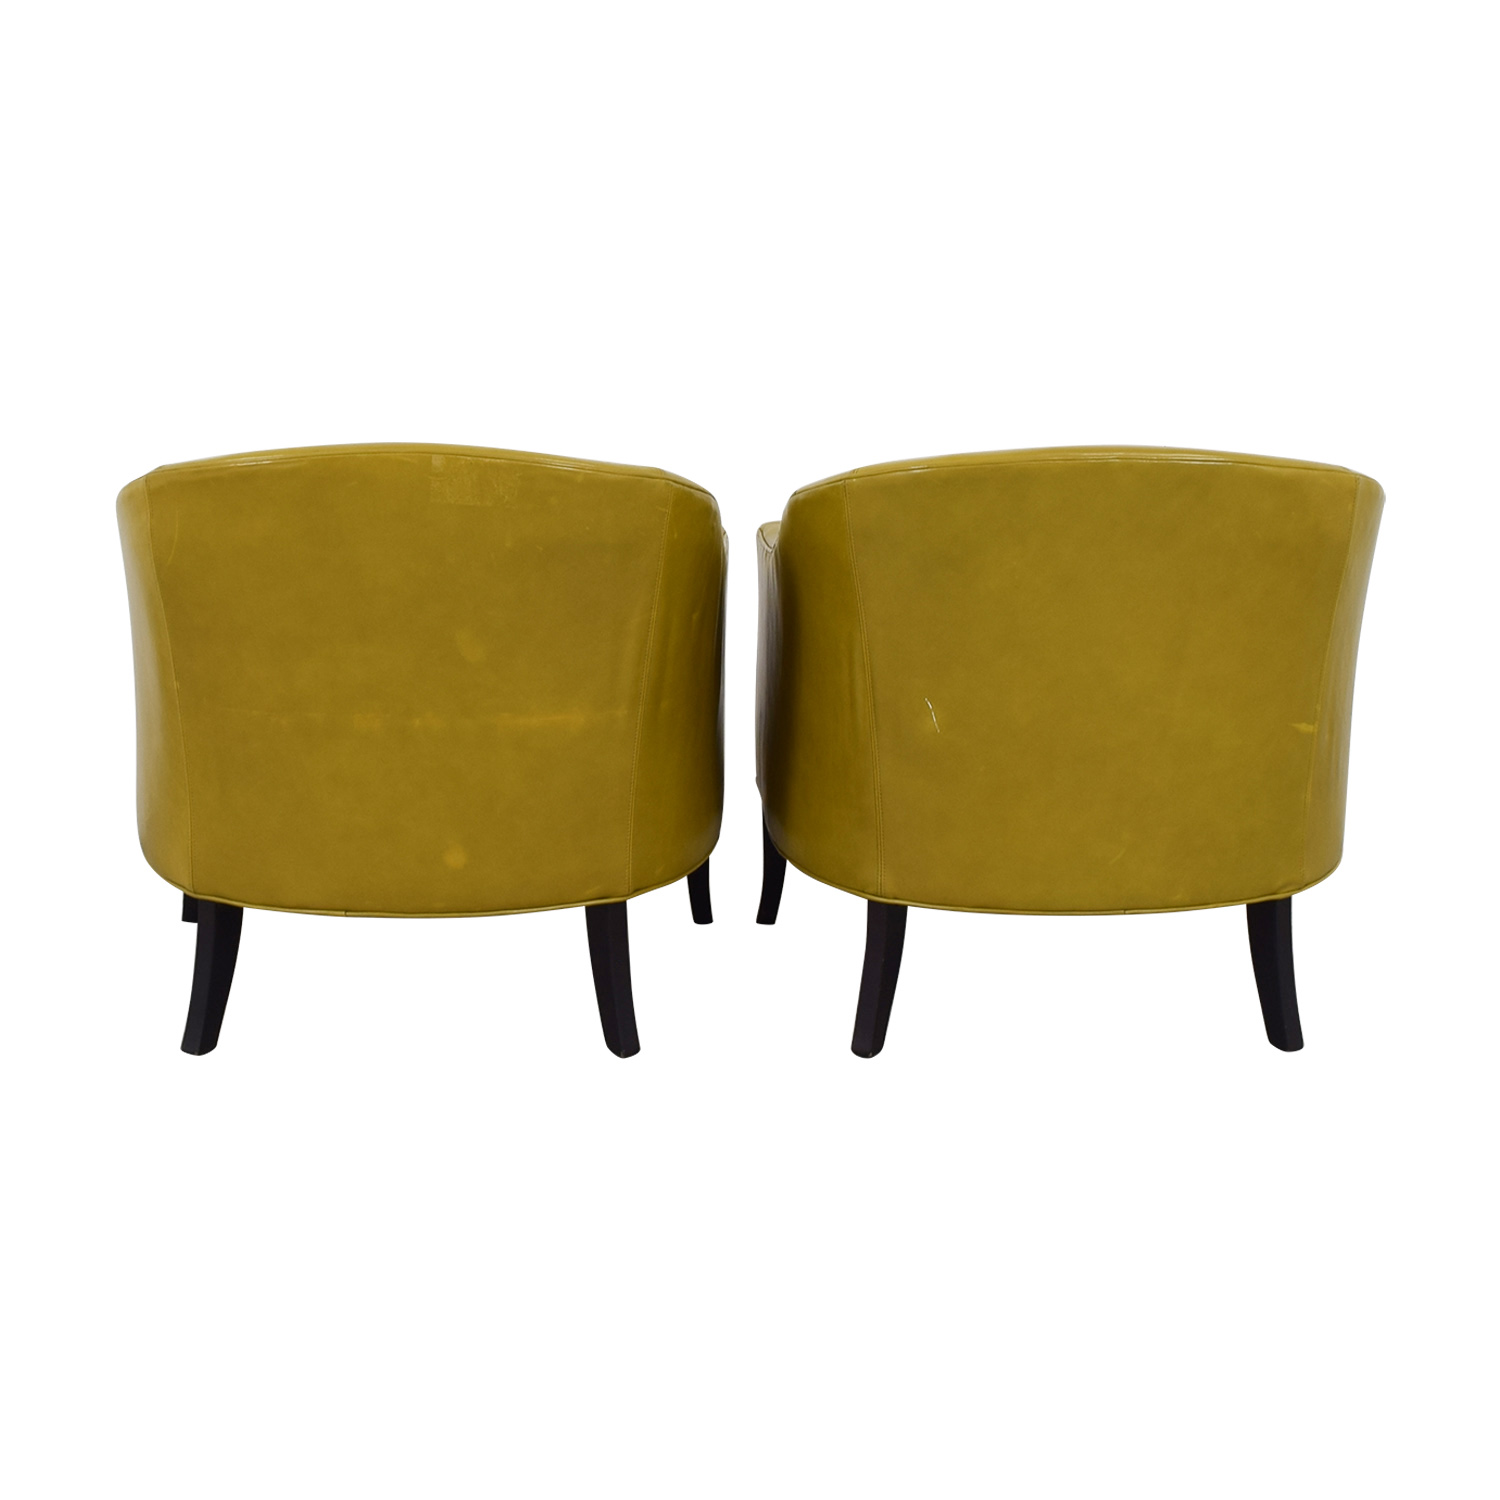 Crate and Barrel Crate and Barrel Lemon Green Leather Side Chairs second hand